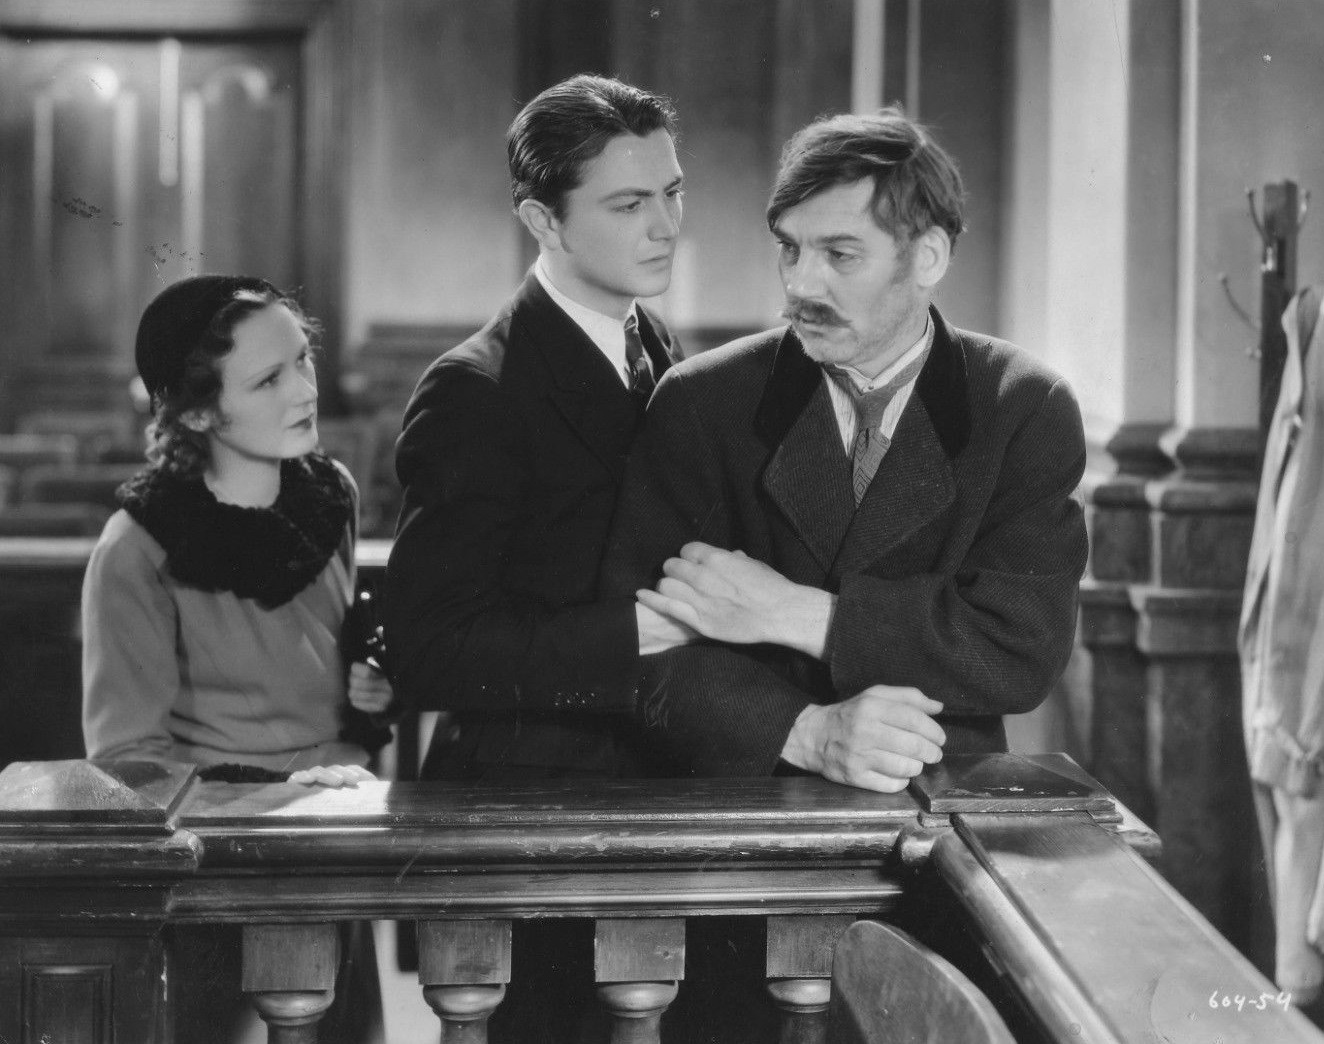 Robert Young, Walter Huston, and Dorothy Jordan in The Wet Parade (1932)